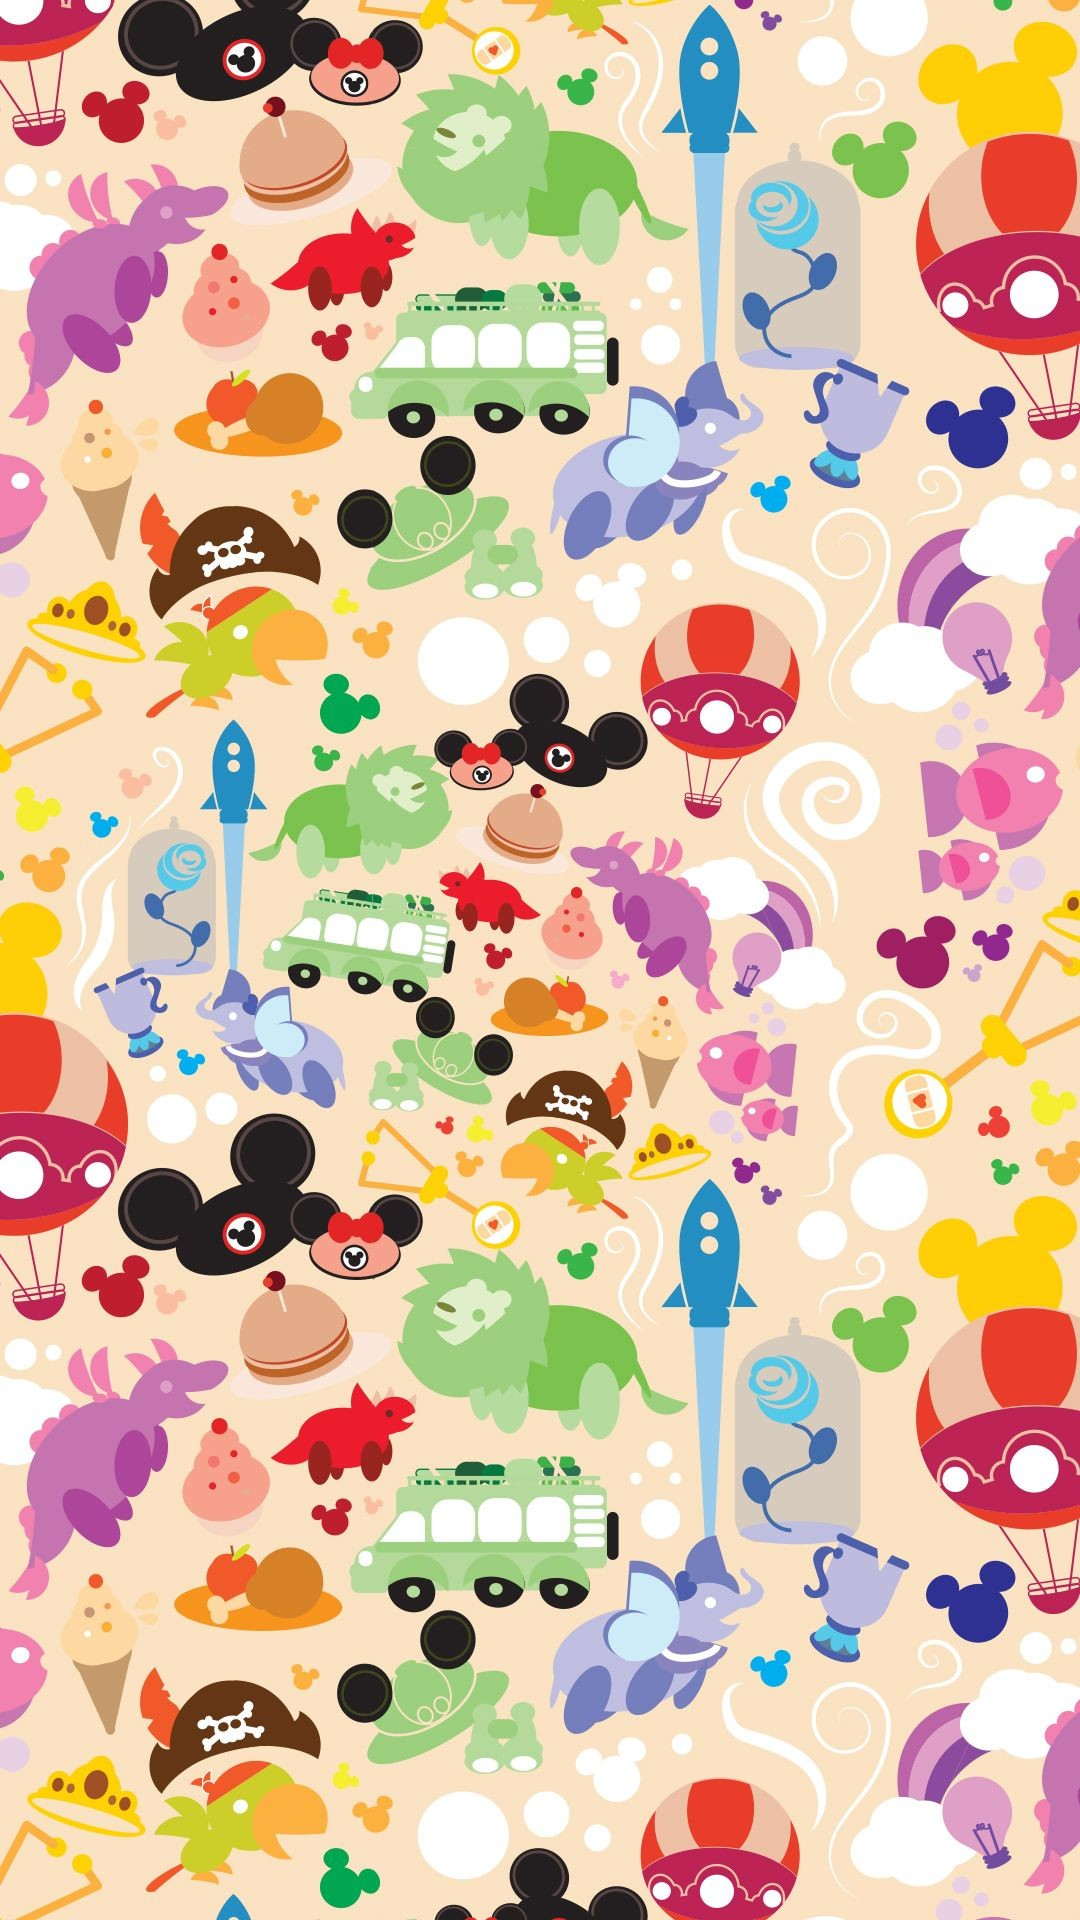 1080x1920 disney wallpaper - Google 검색